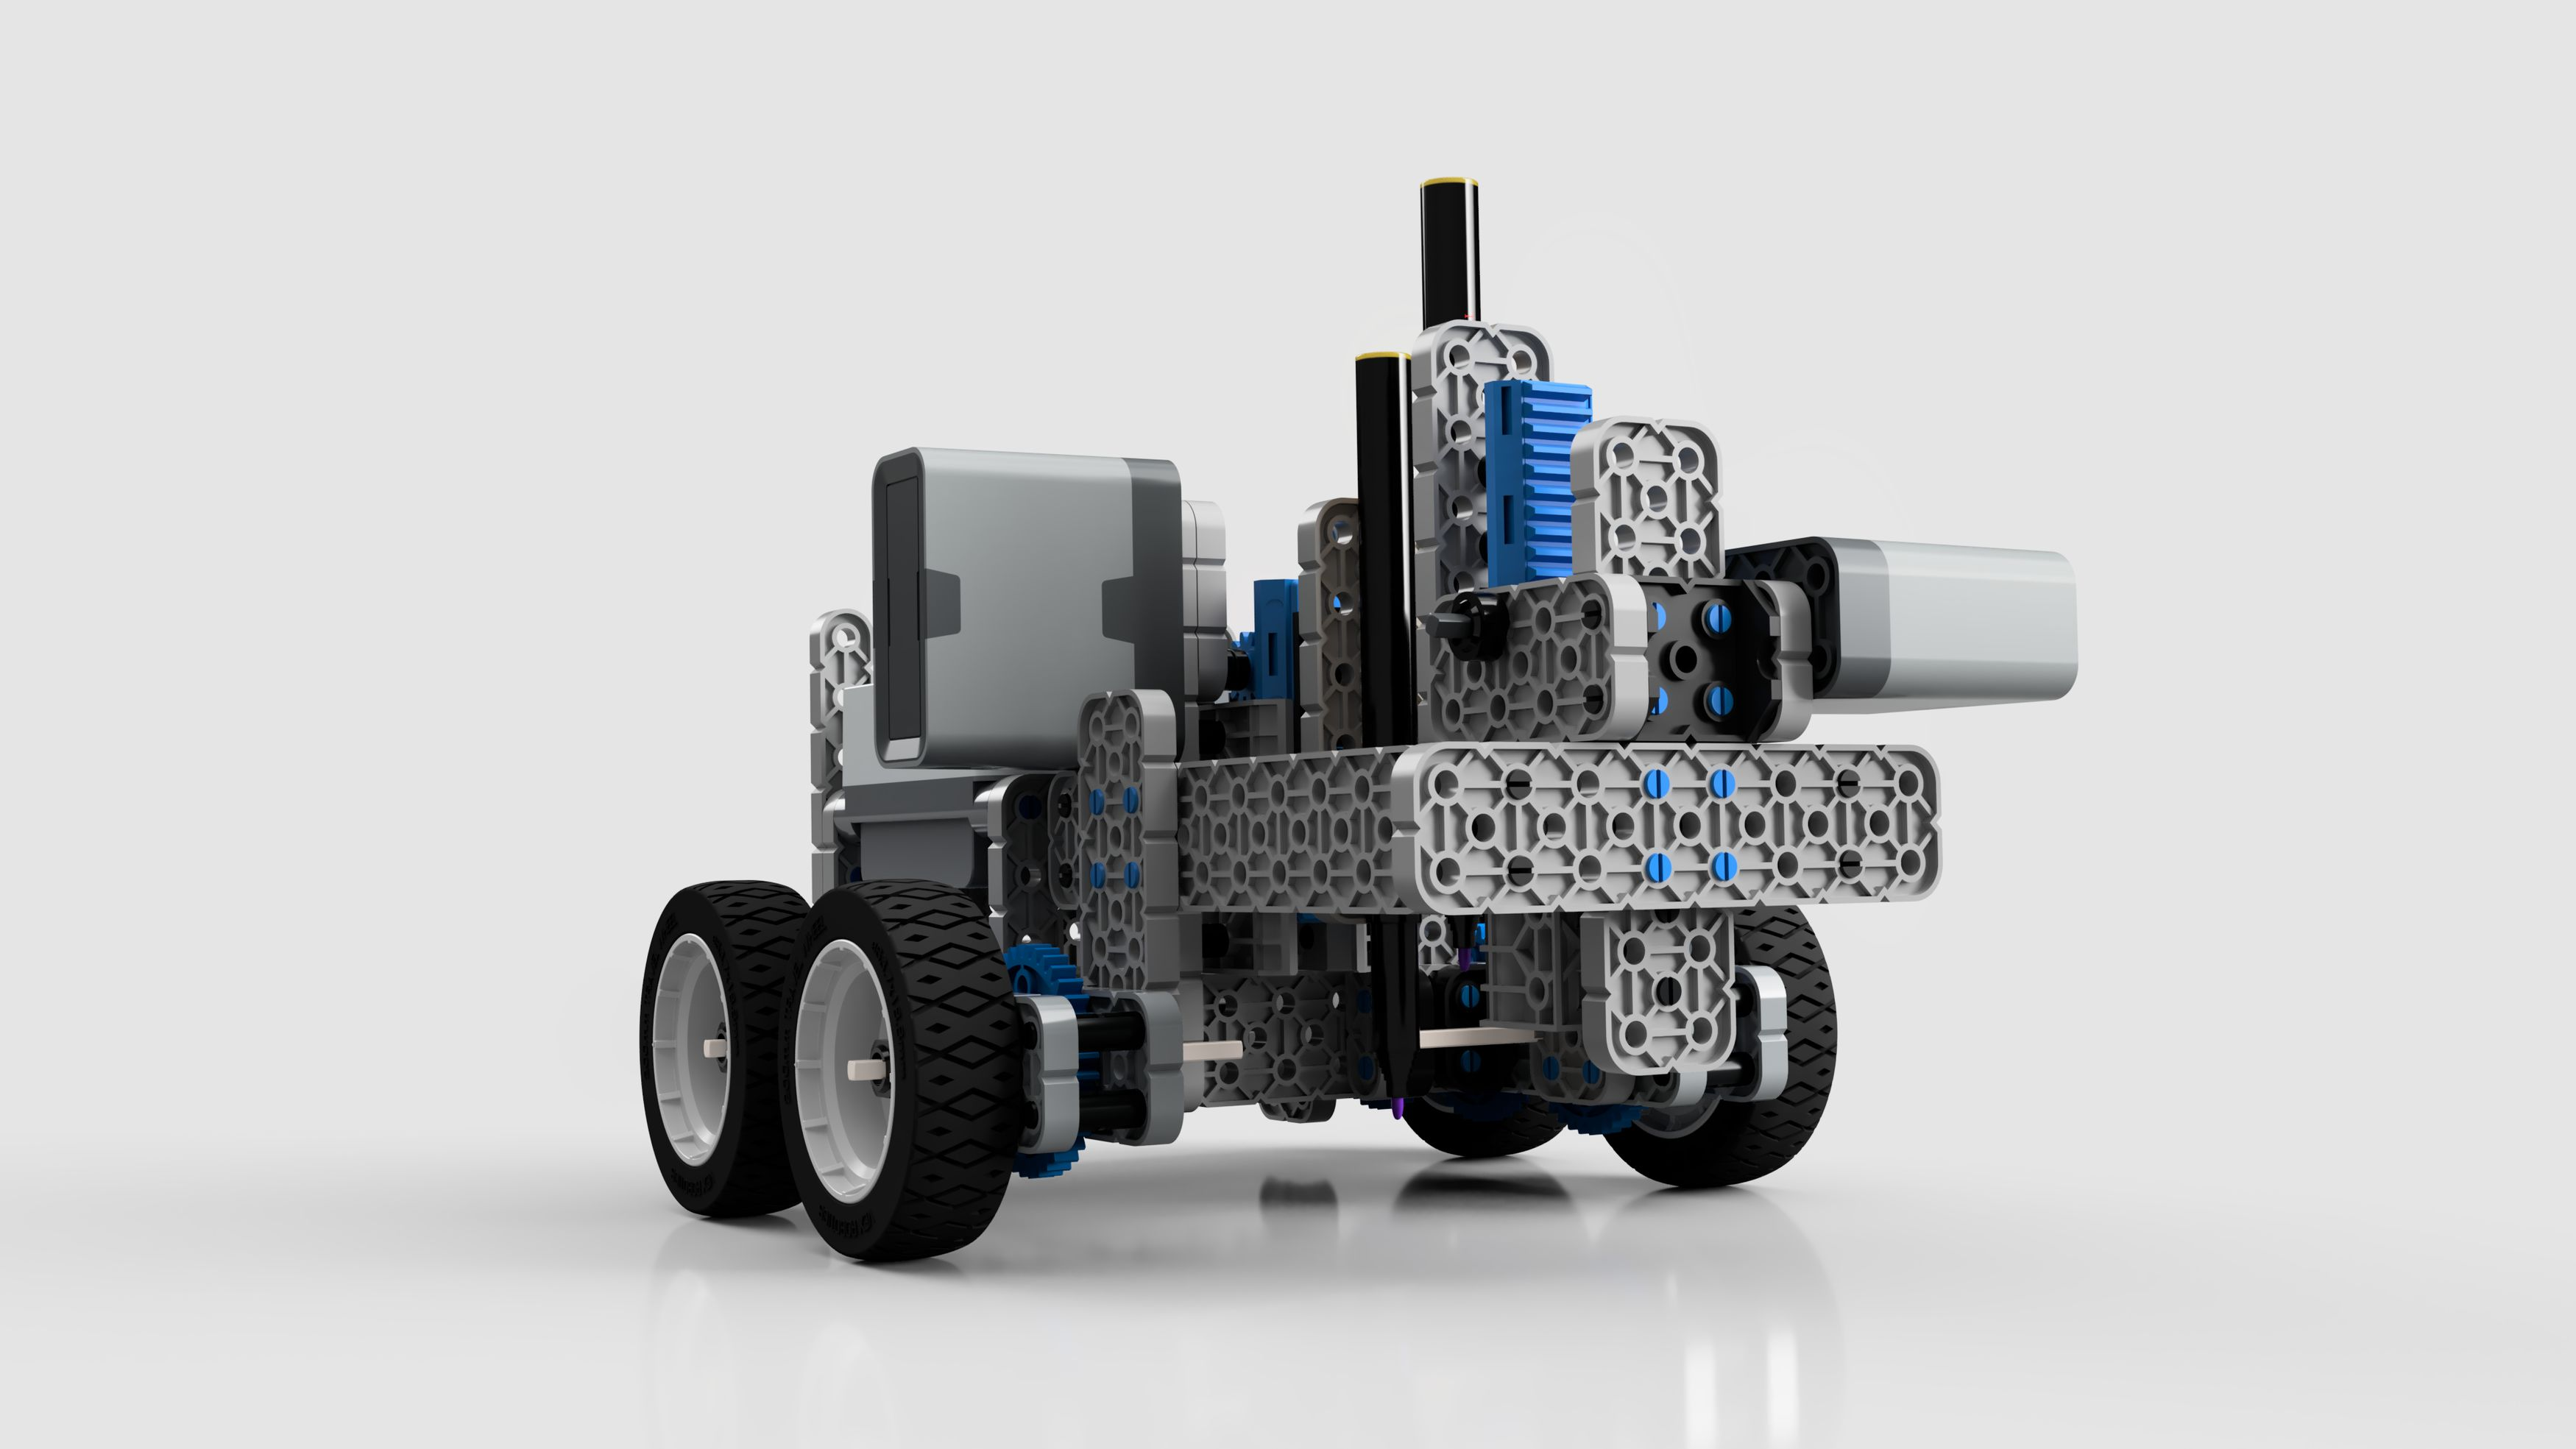 Vex-iq-robot-caneta-2020-may-24-06-02-32pm-000-customizedview37176427021-png-3500-3500